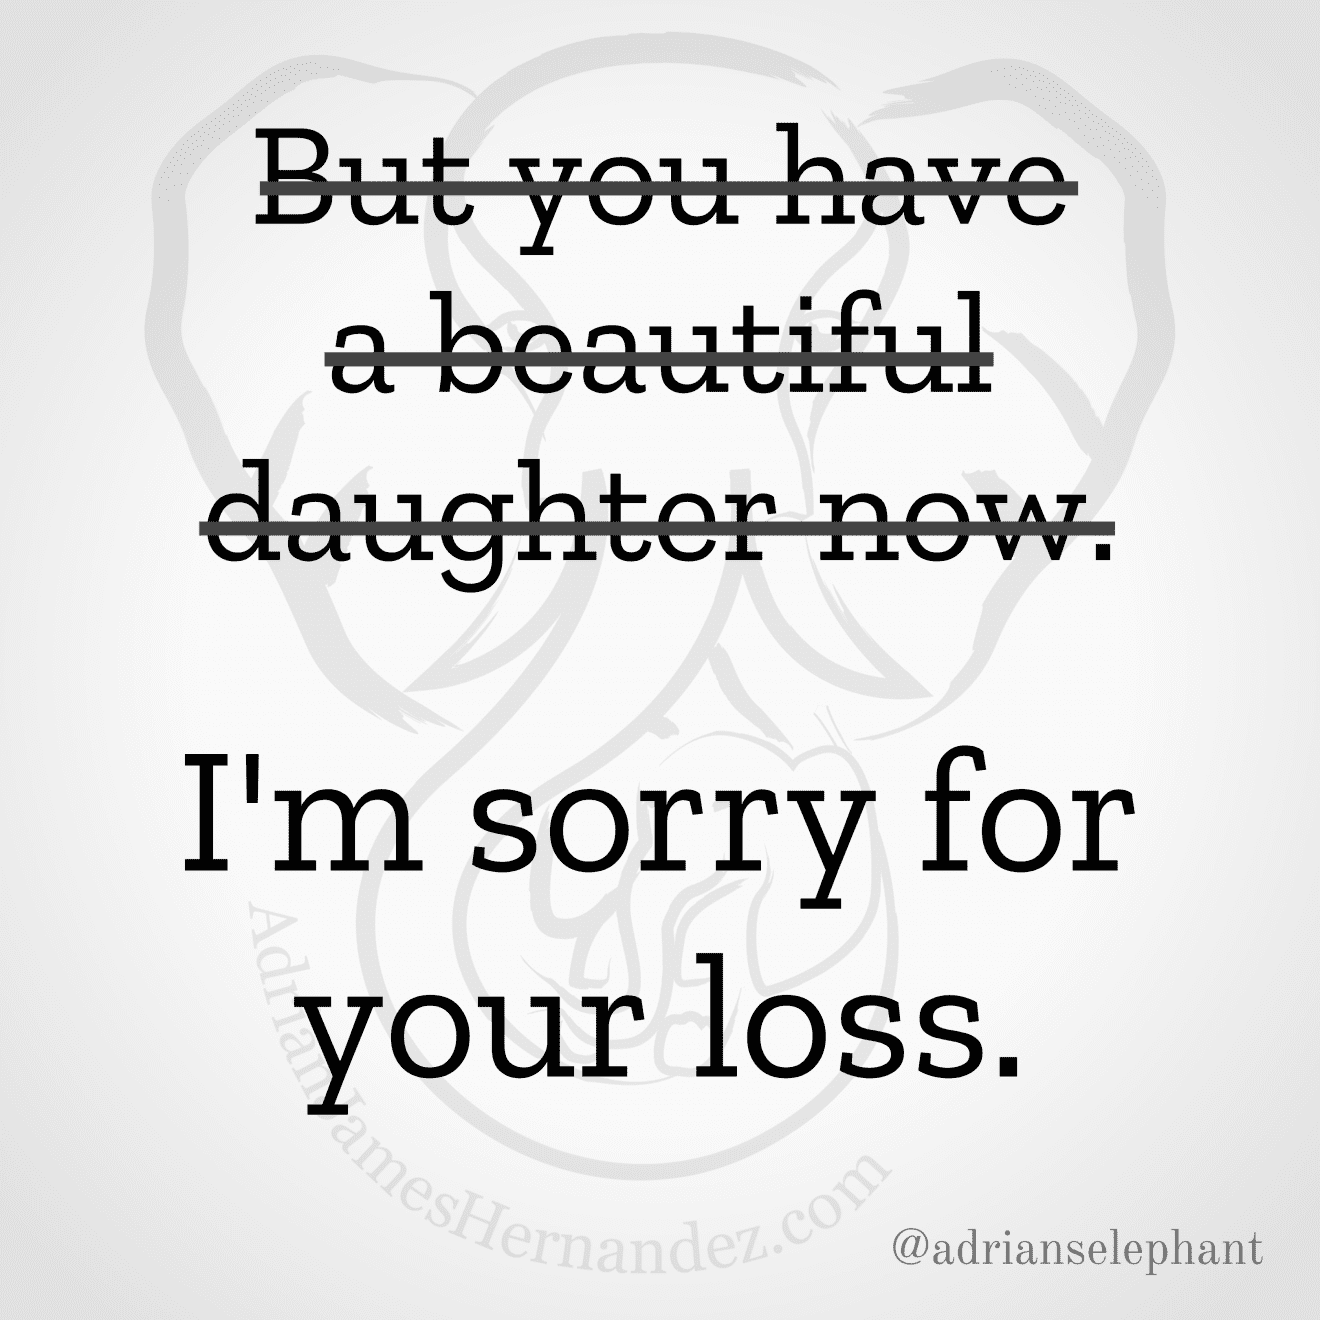 """But you have a beautiful daughter now."" Rewritten: I'm sorry for your loss."